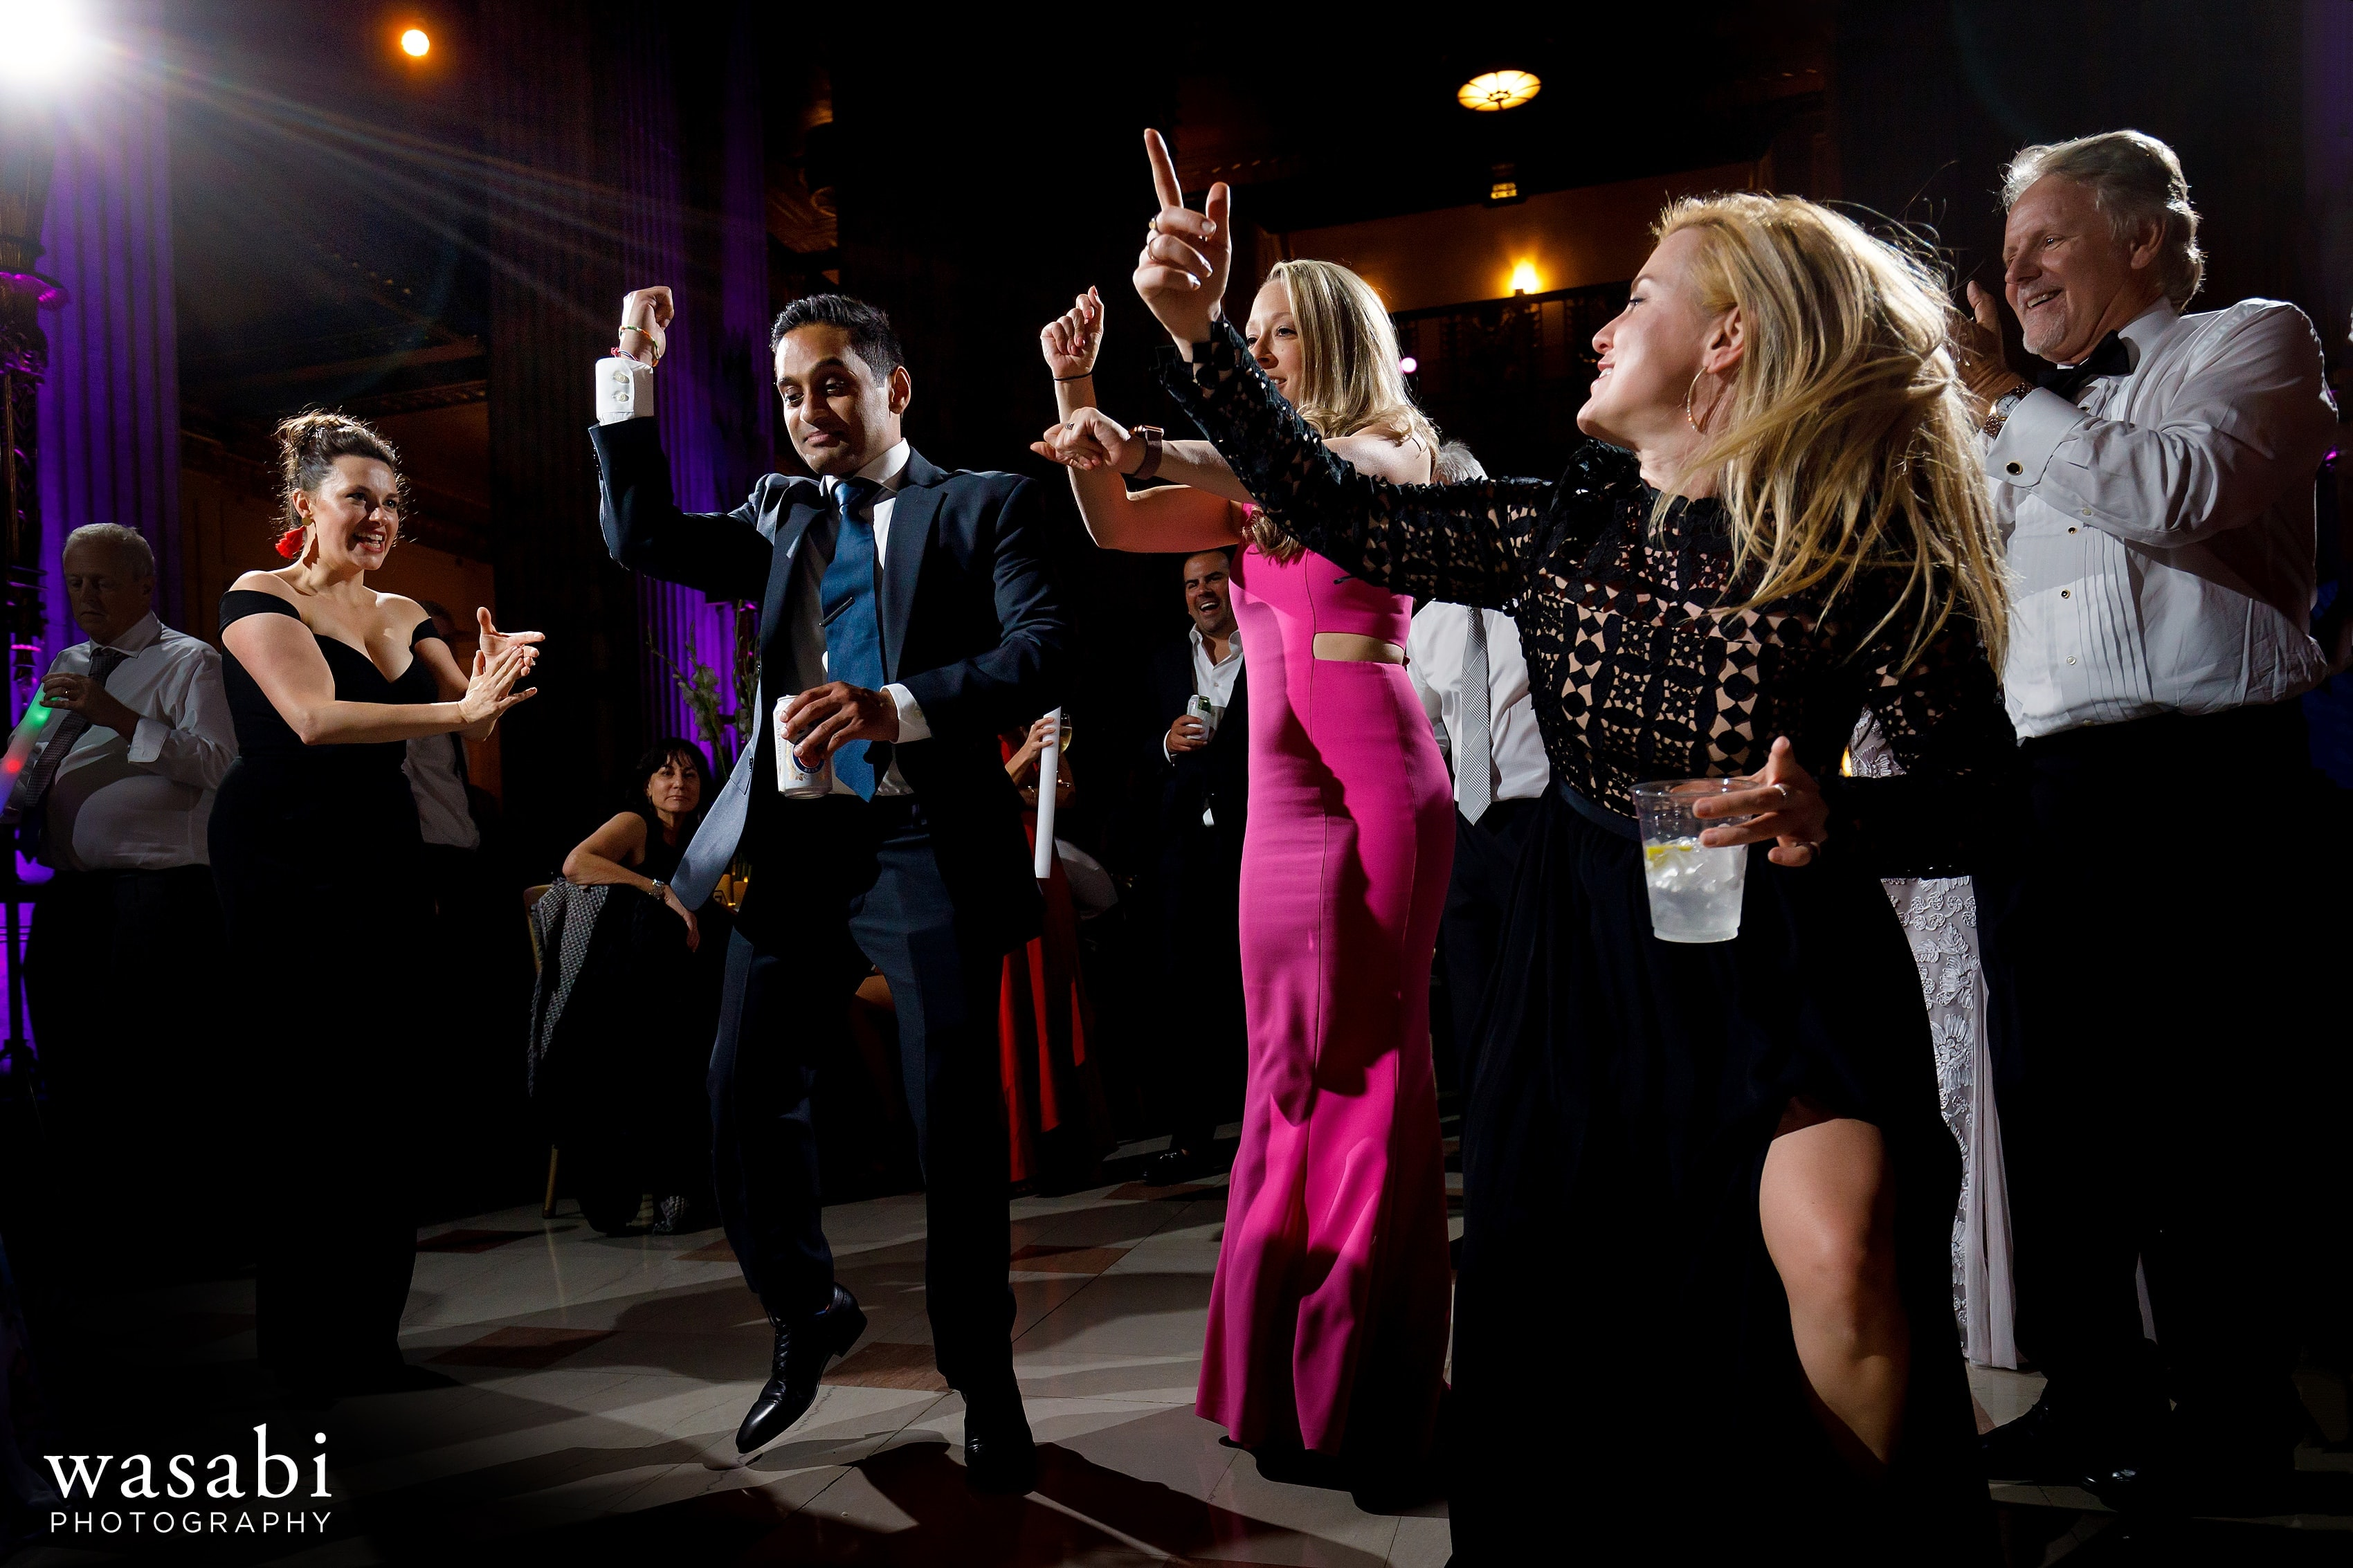 Guests dance during Civic Opera House wedding reception